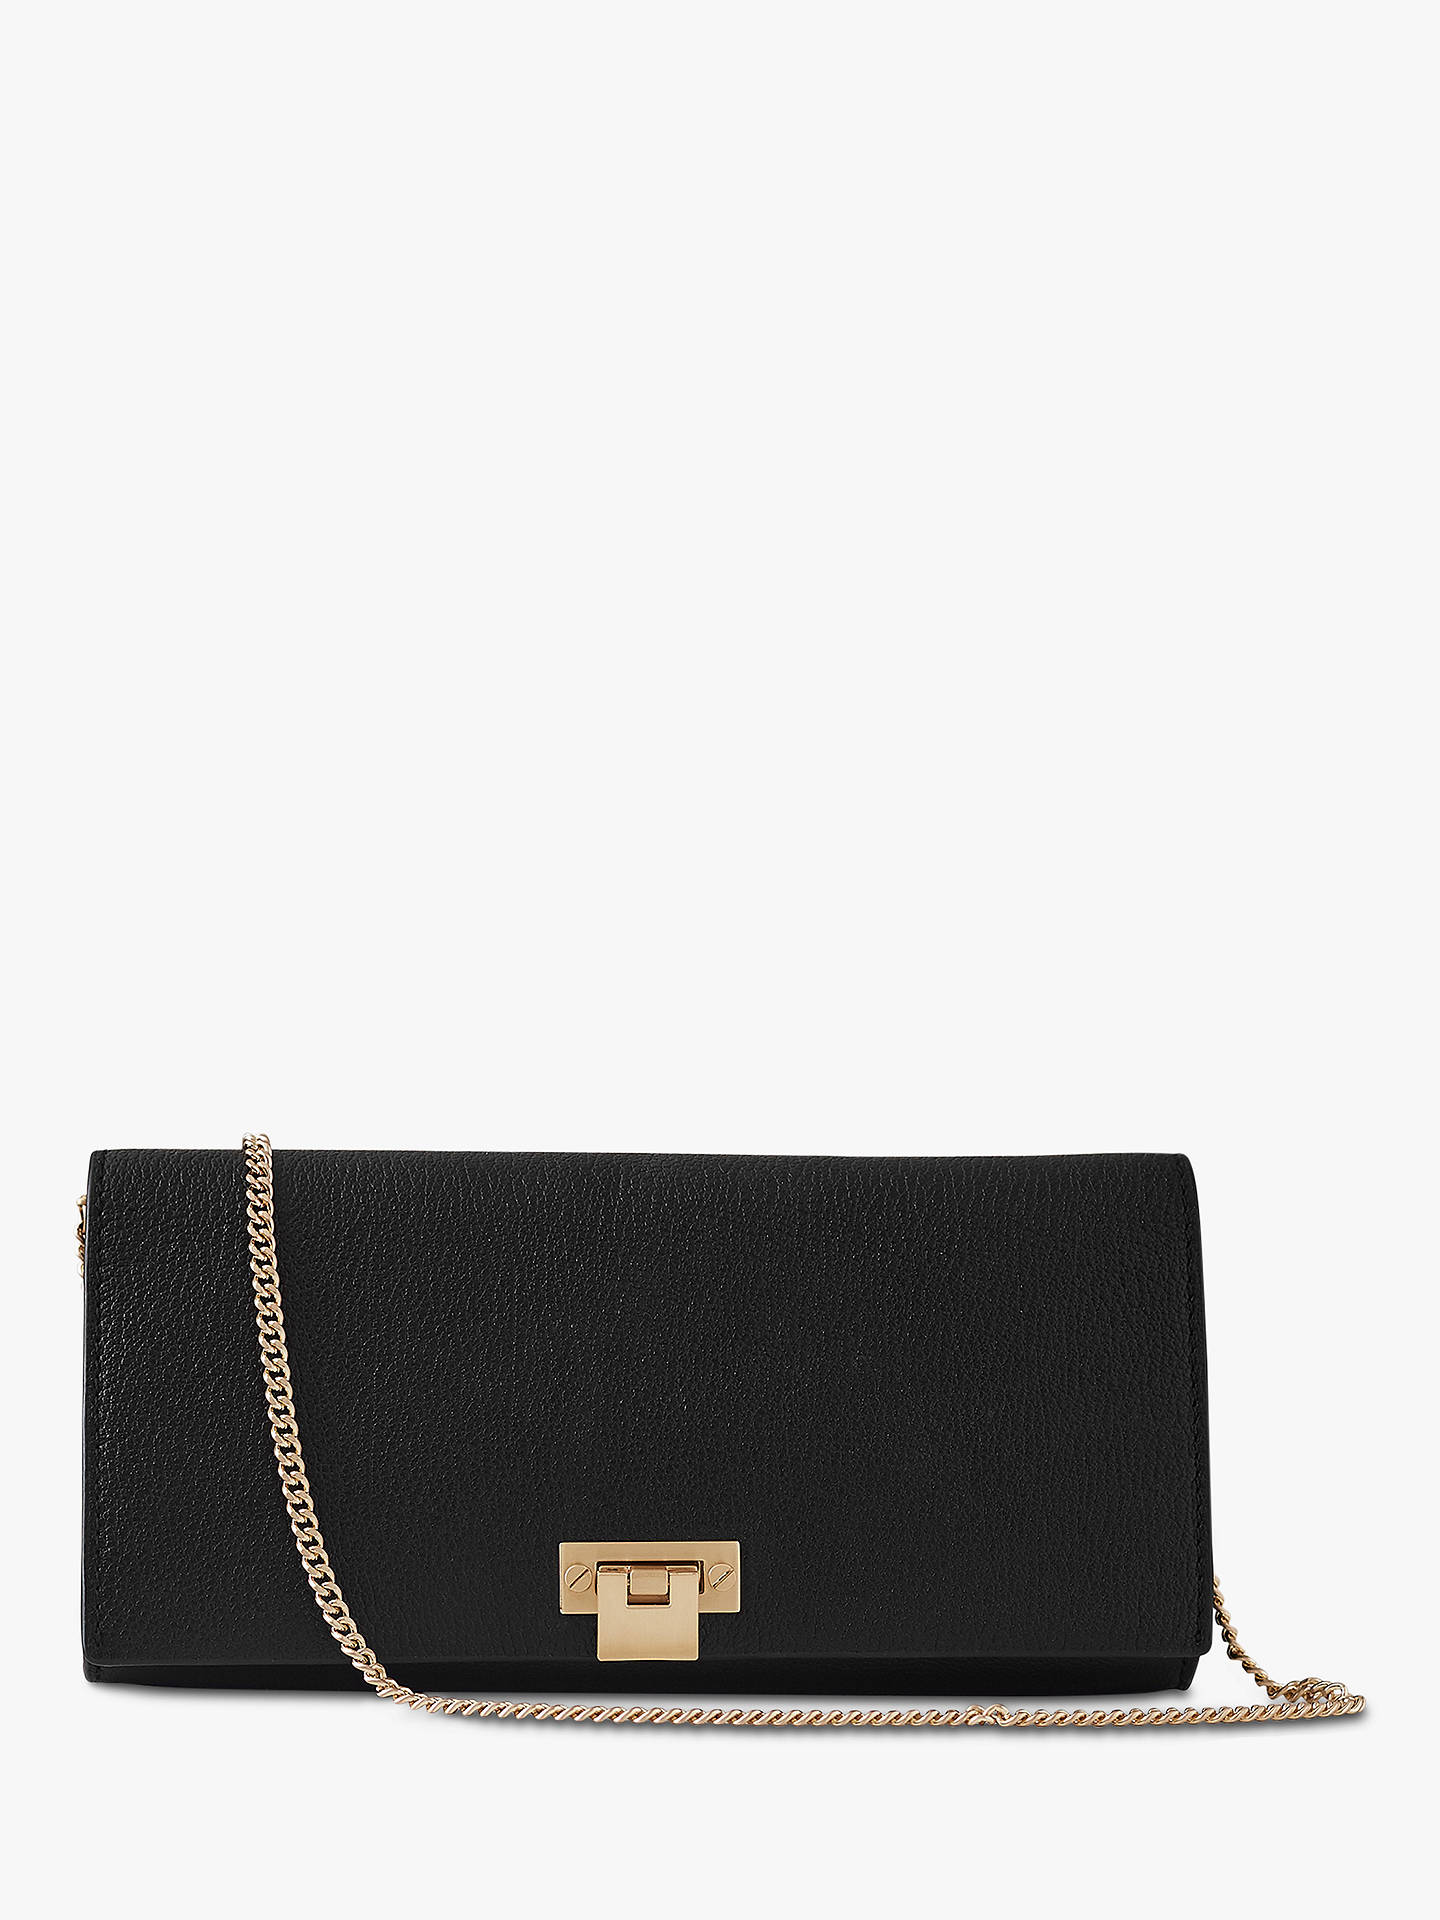 Reiss Audley Suede Clutch Bag Black Online At Johnlewis